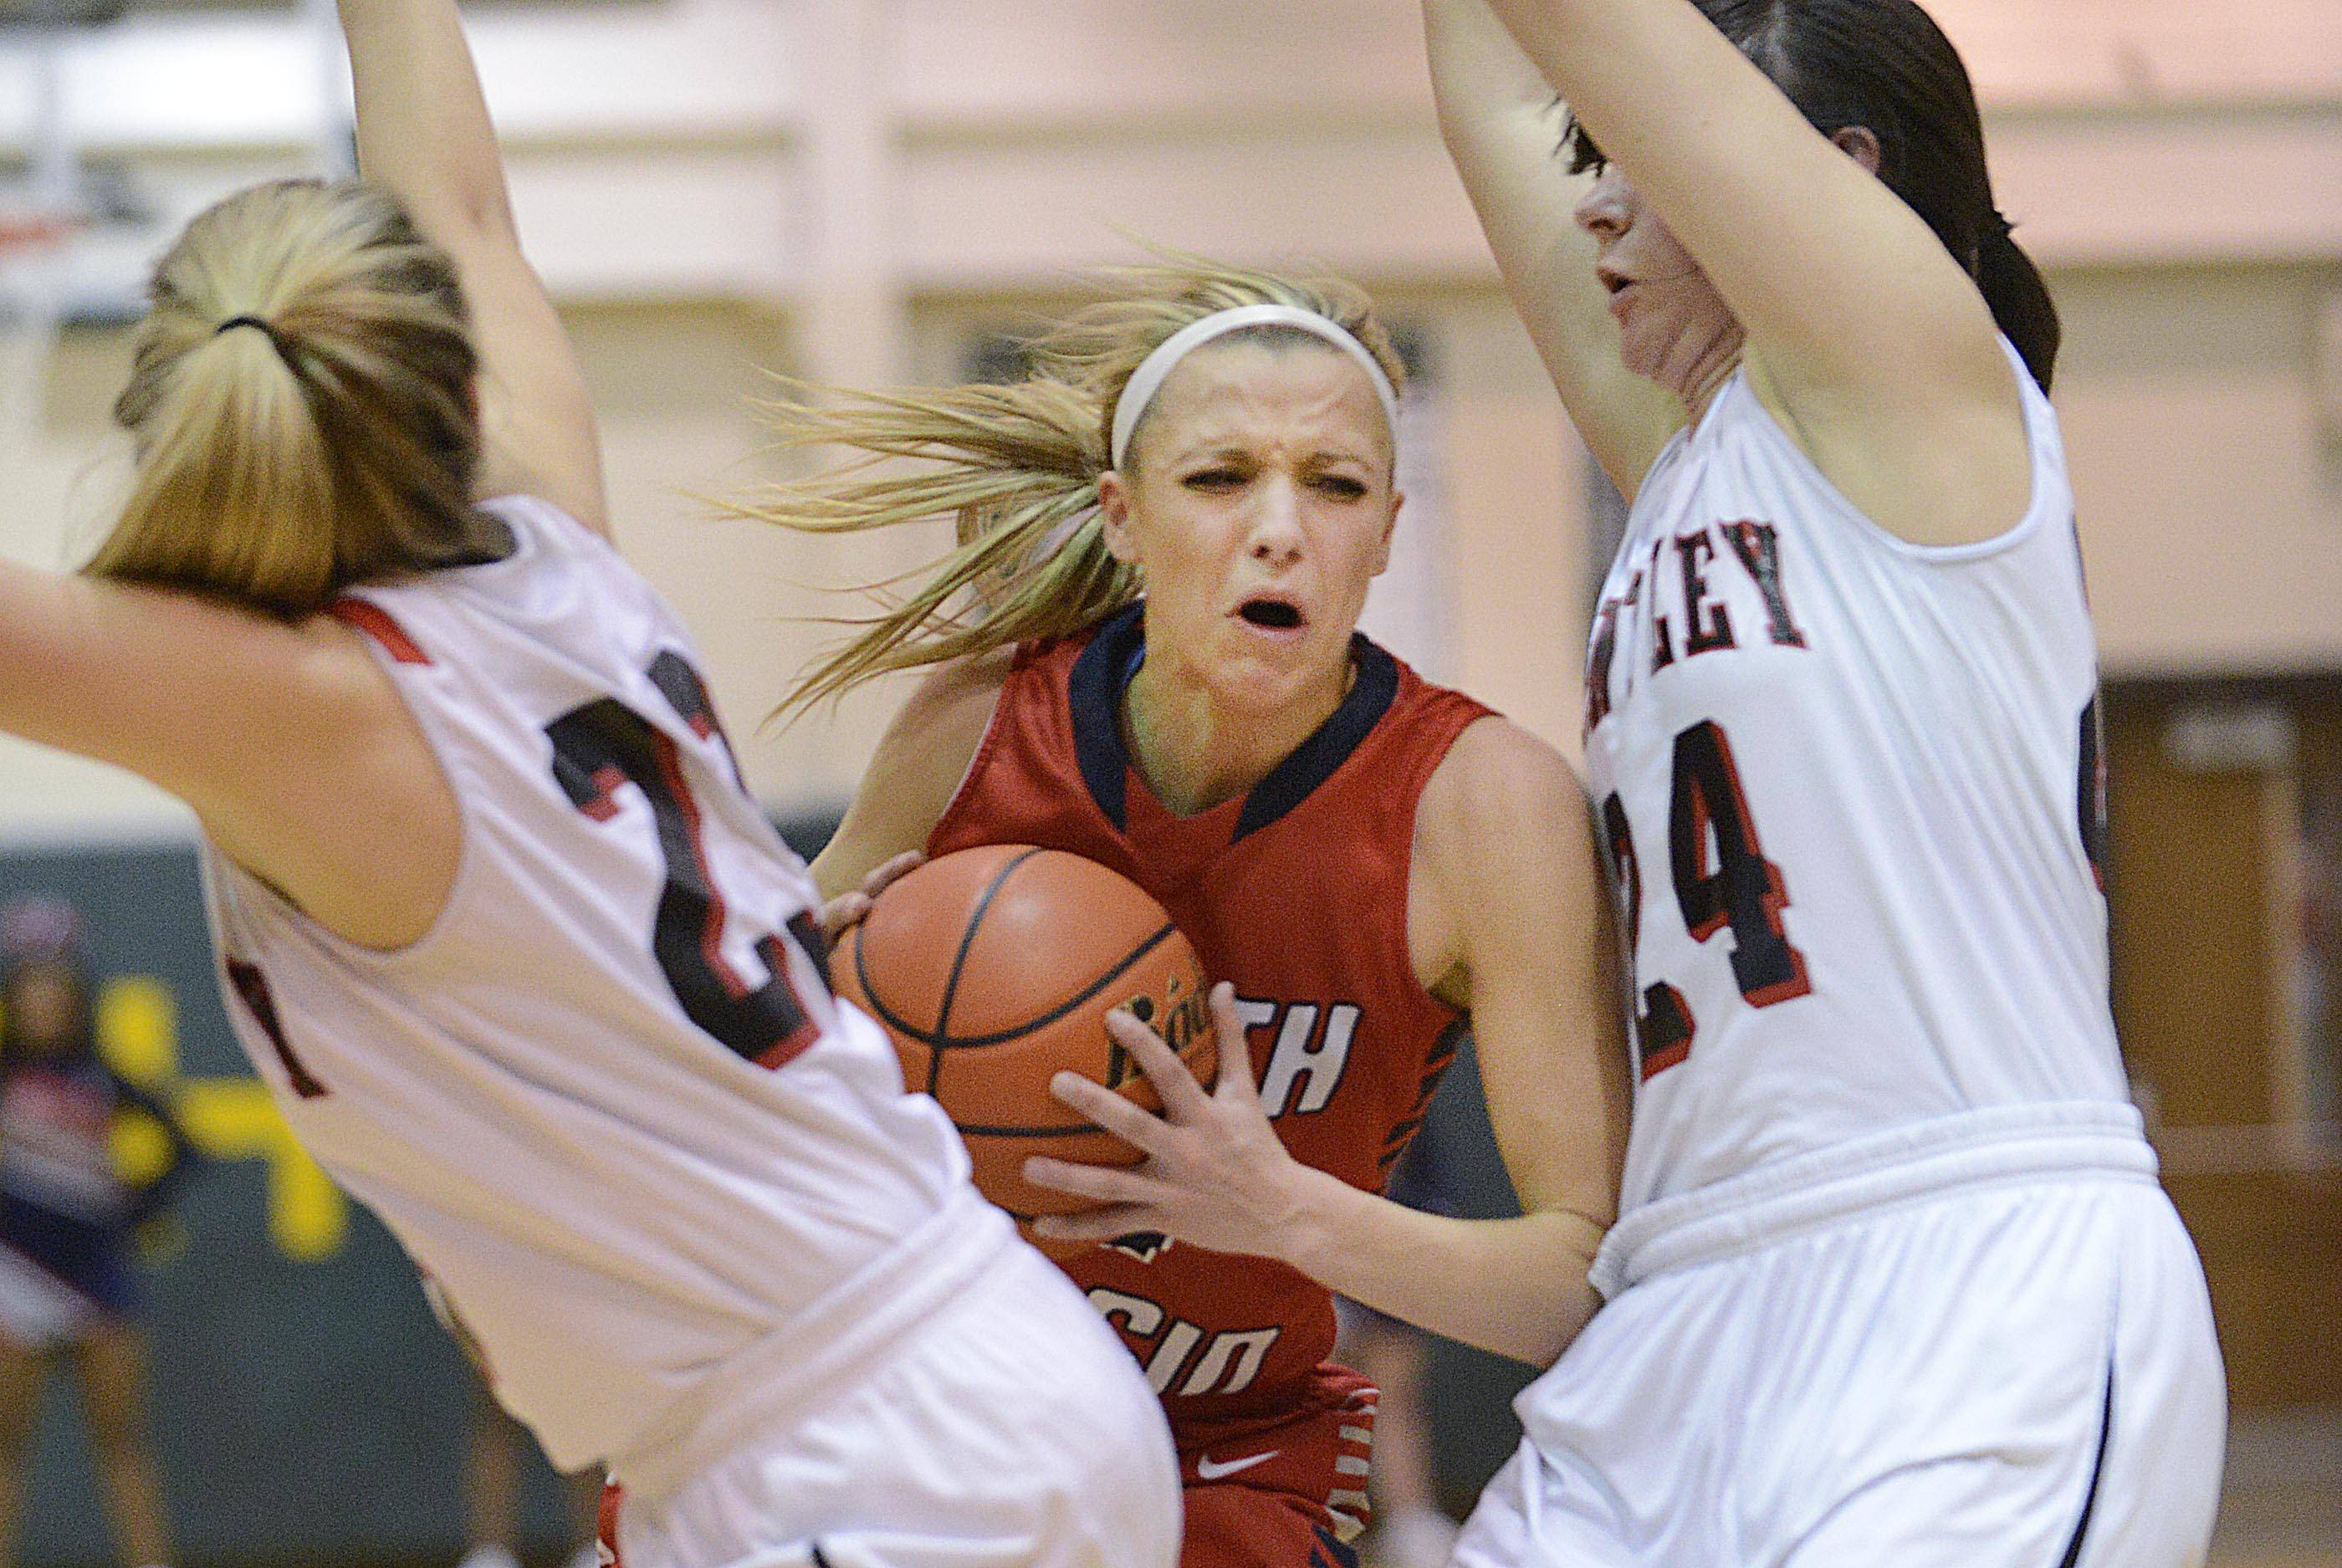 South Elgin's Savanah Uveges pushes past Huntley's Bethany Zornow and Jessica Brock in the Class 4A Crystal Lake South sectional game Tuesday.